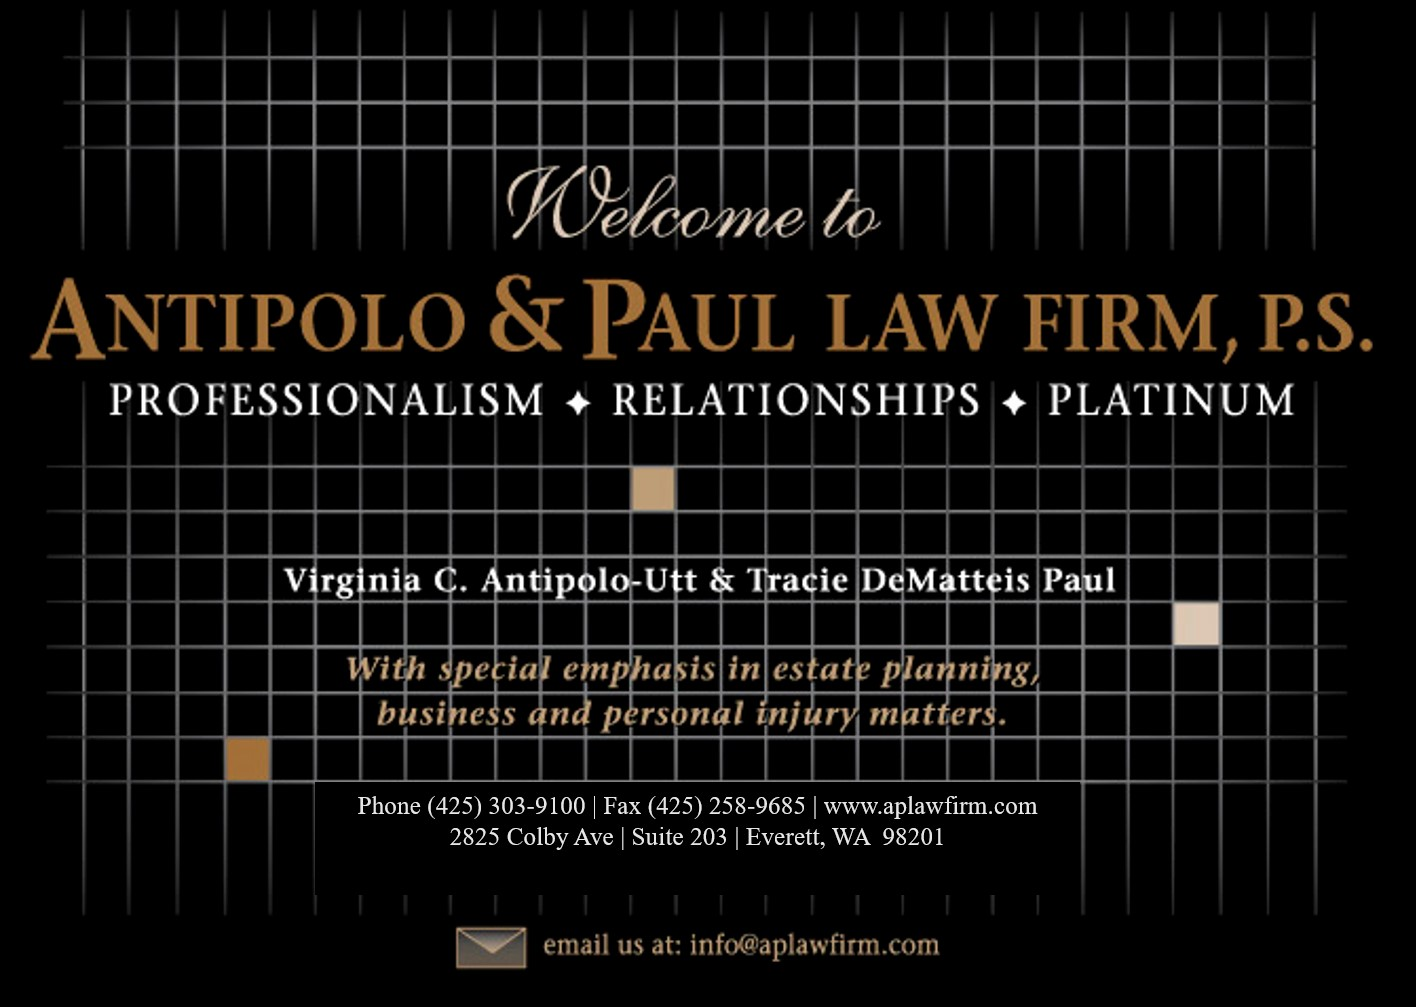 Antipolo & Paul Law Firm, P.S.